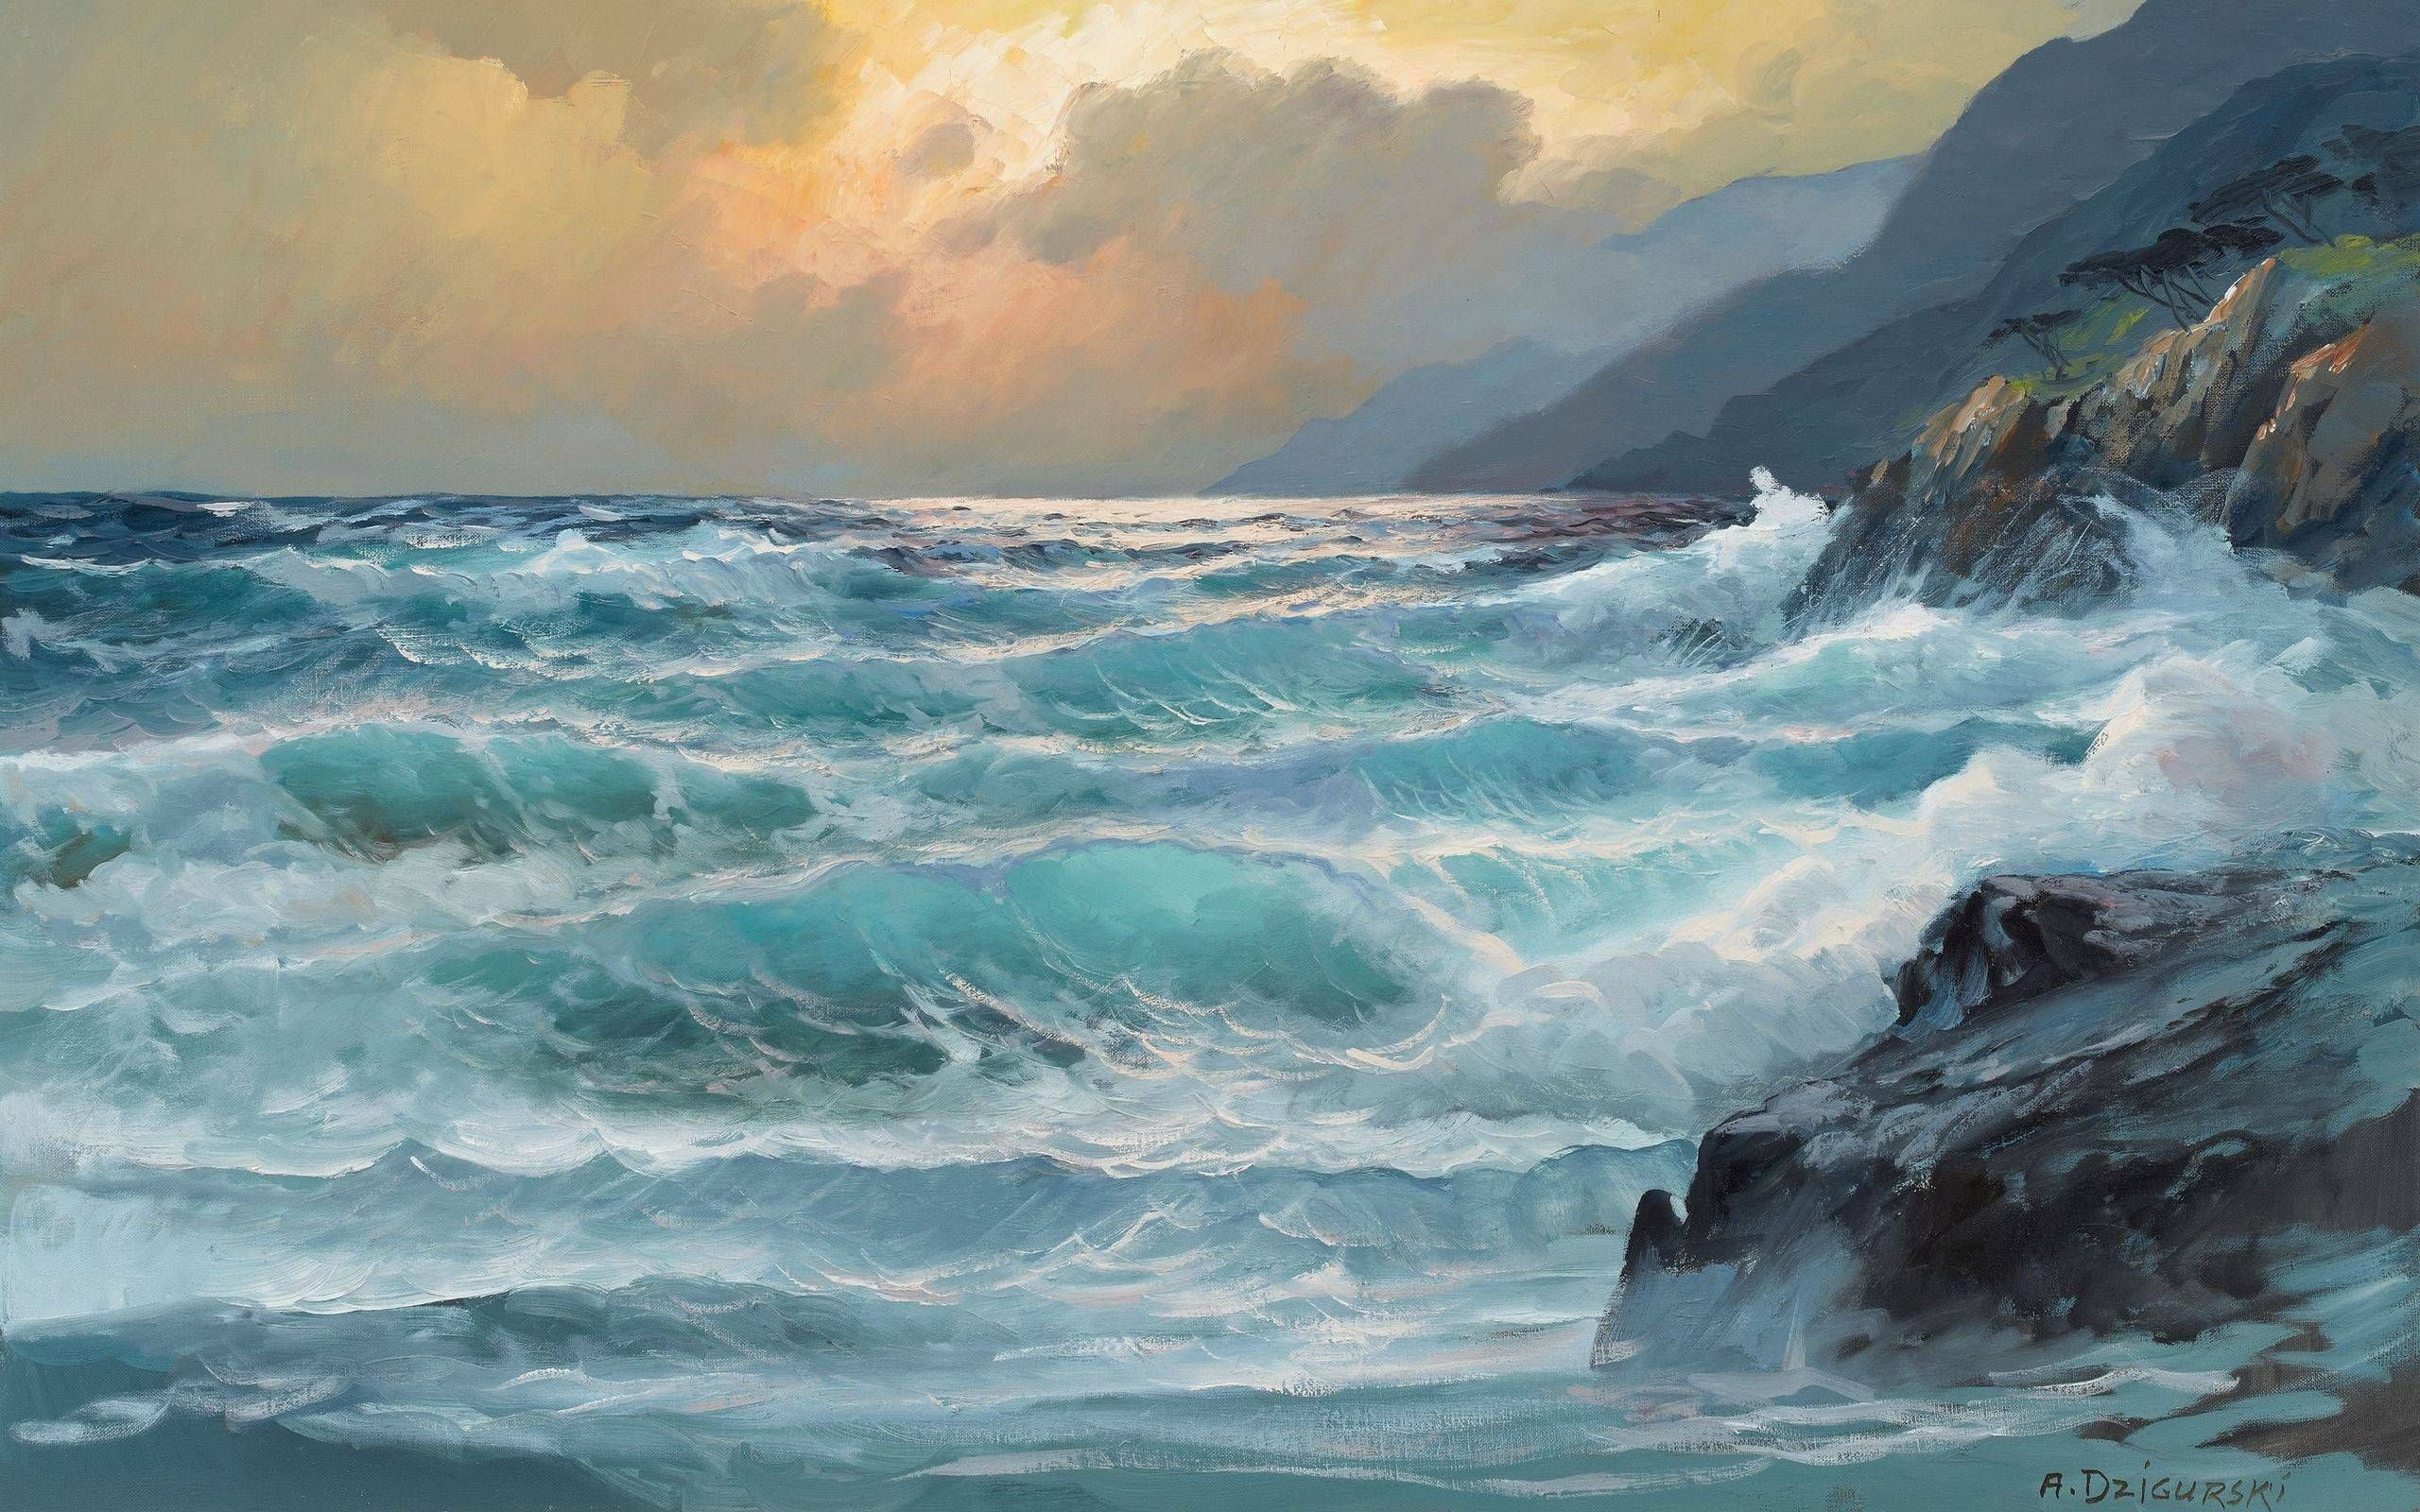 paintings-ocean-2560x1600-wallpaper-1682888.jpg 2,560 ...